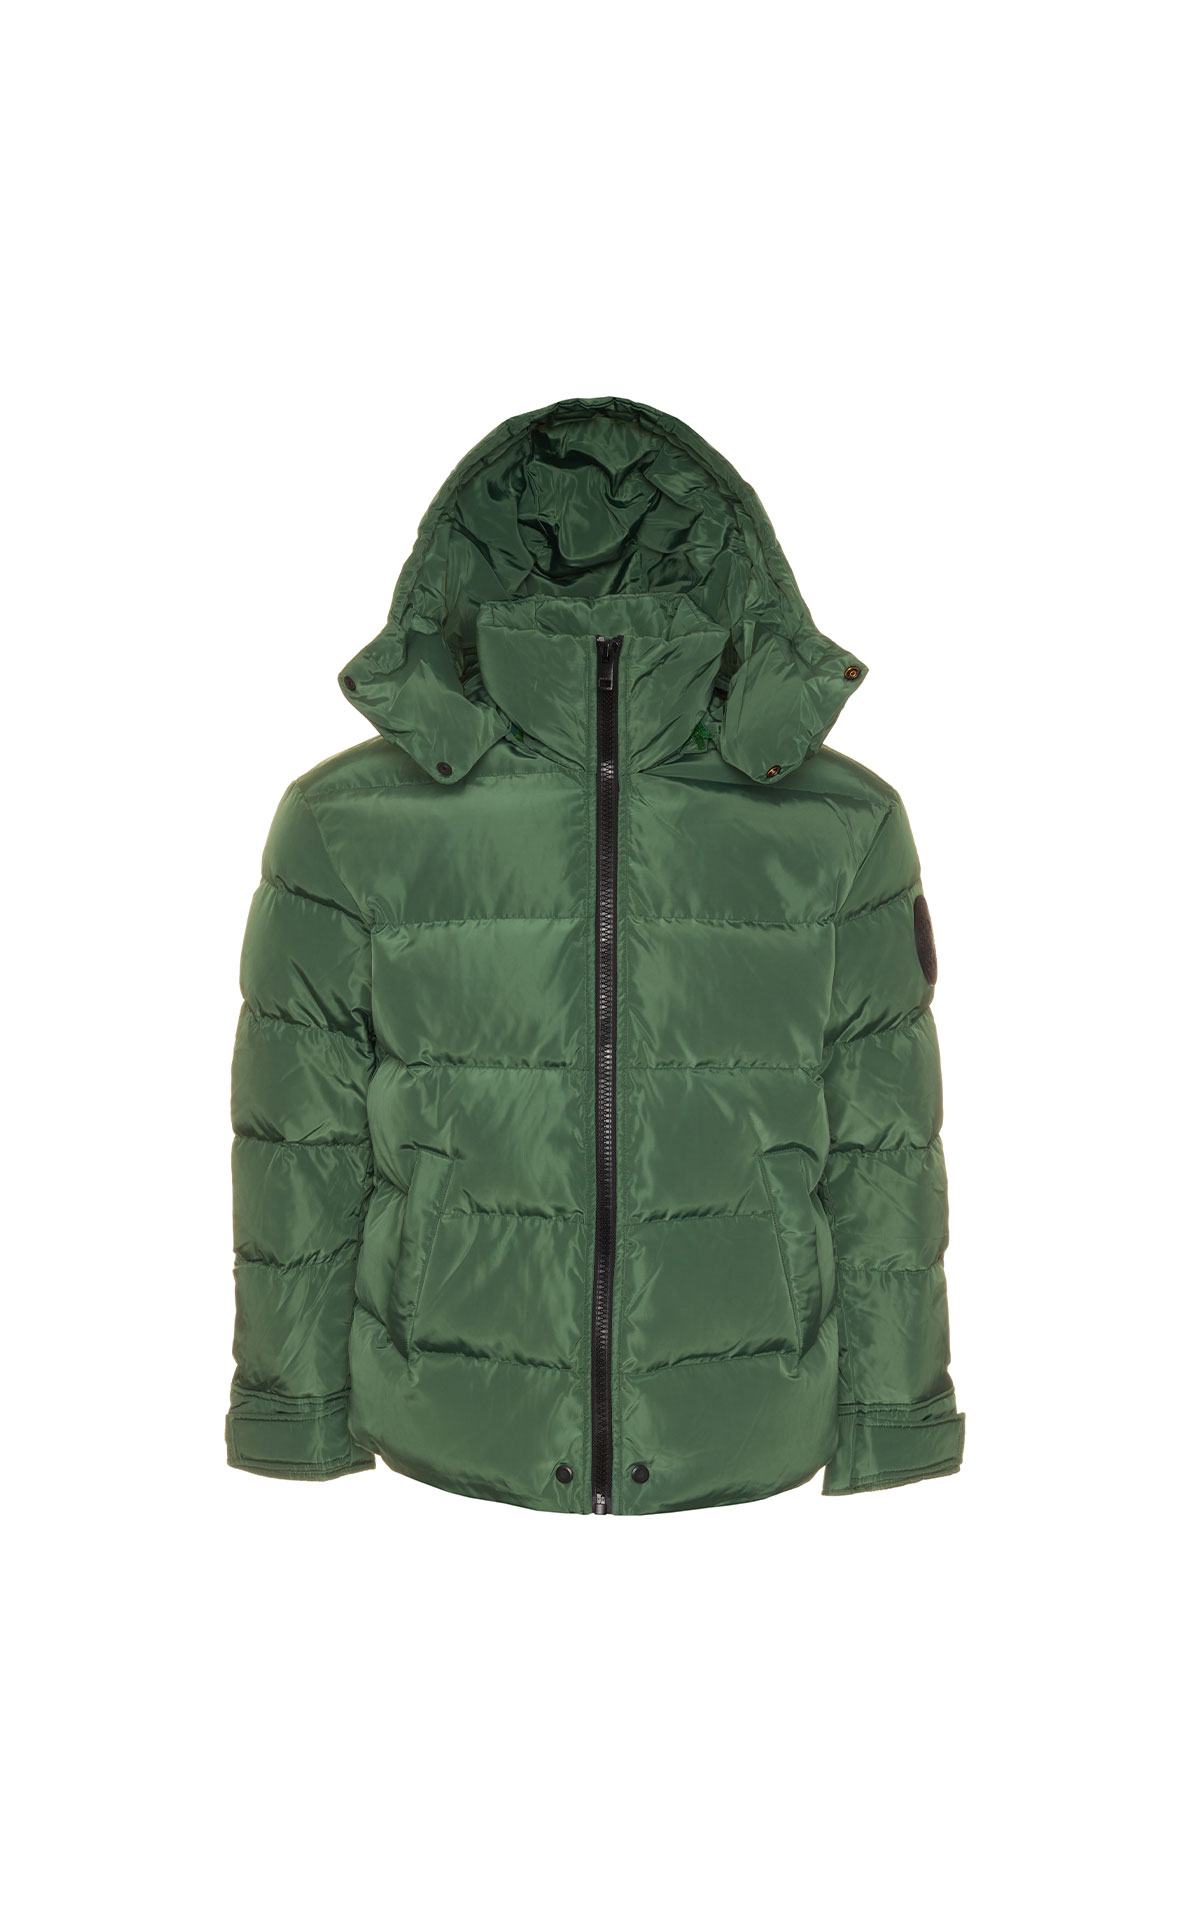 Diesel Men's green puffer jacket from Bicester Village